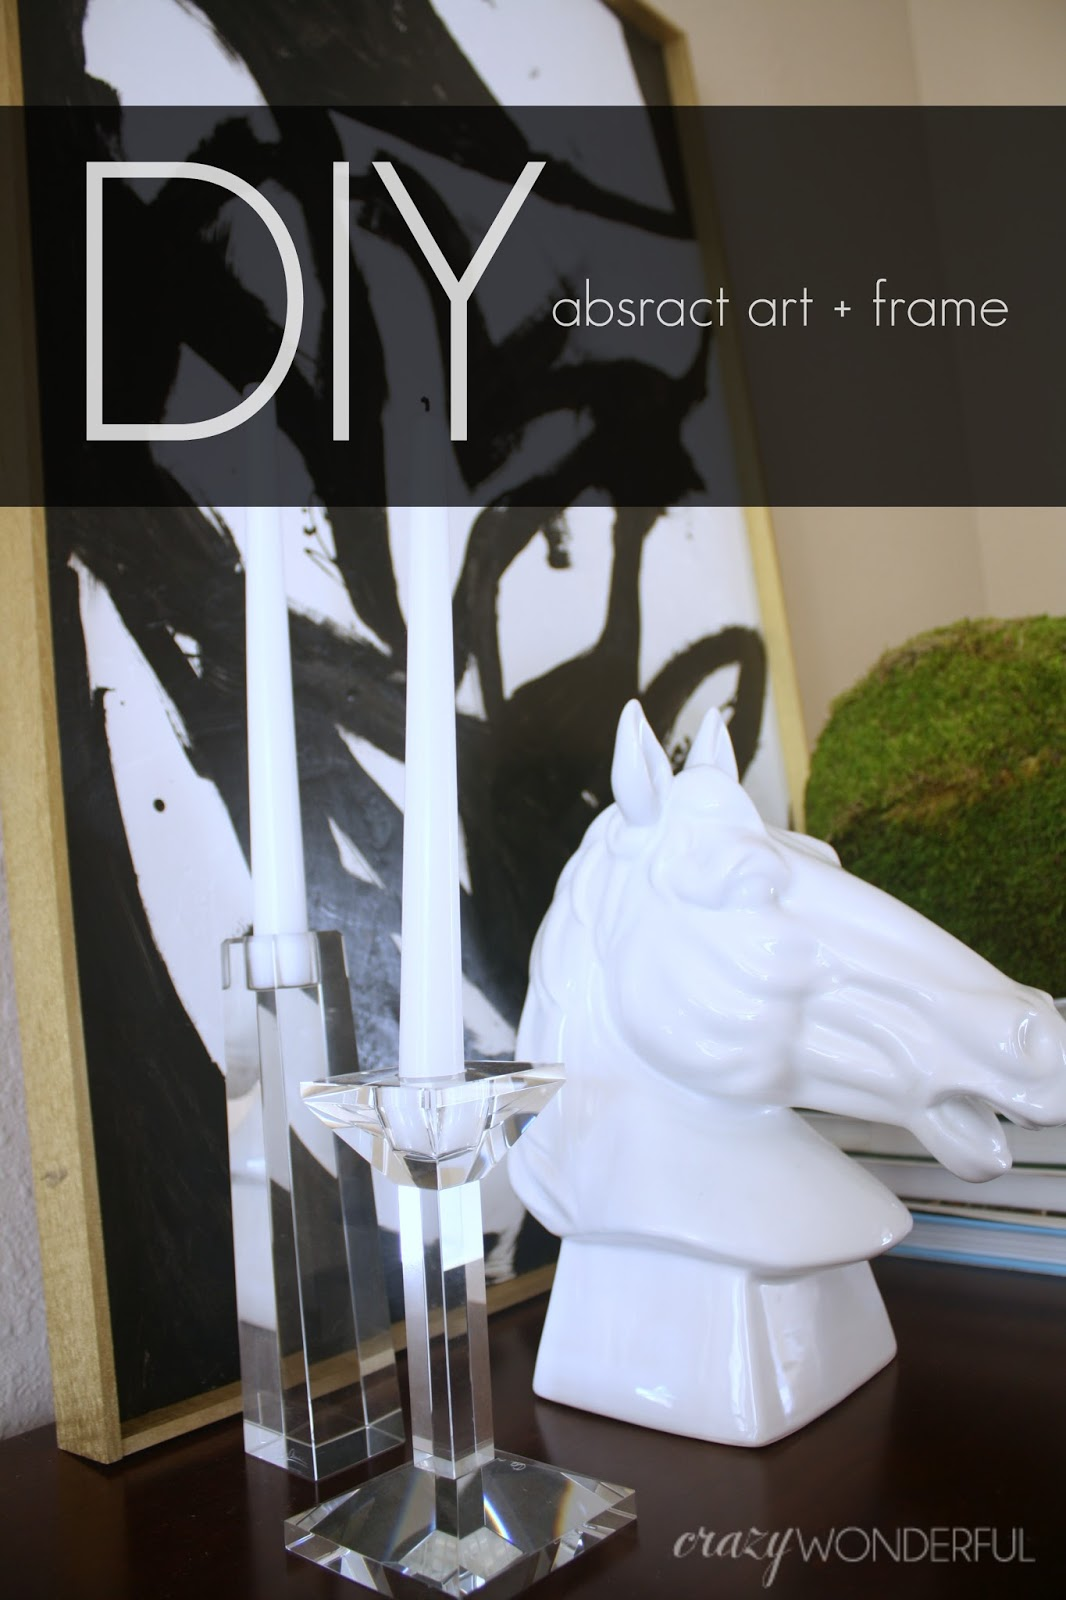 DIY abstract art + frame | tutorial - Crazy Wonderful